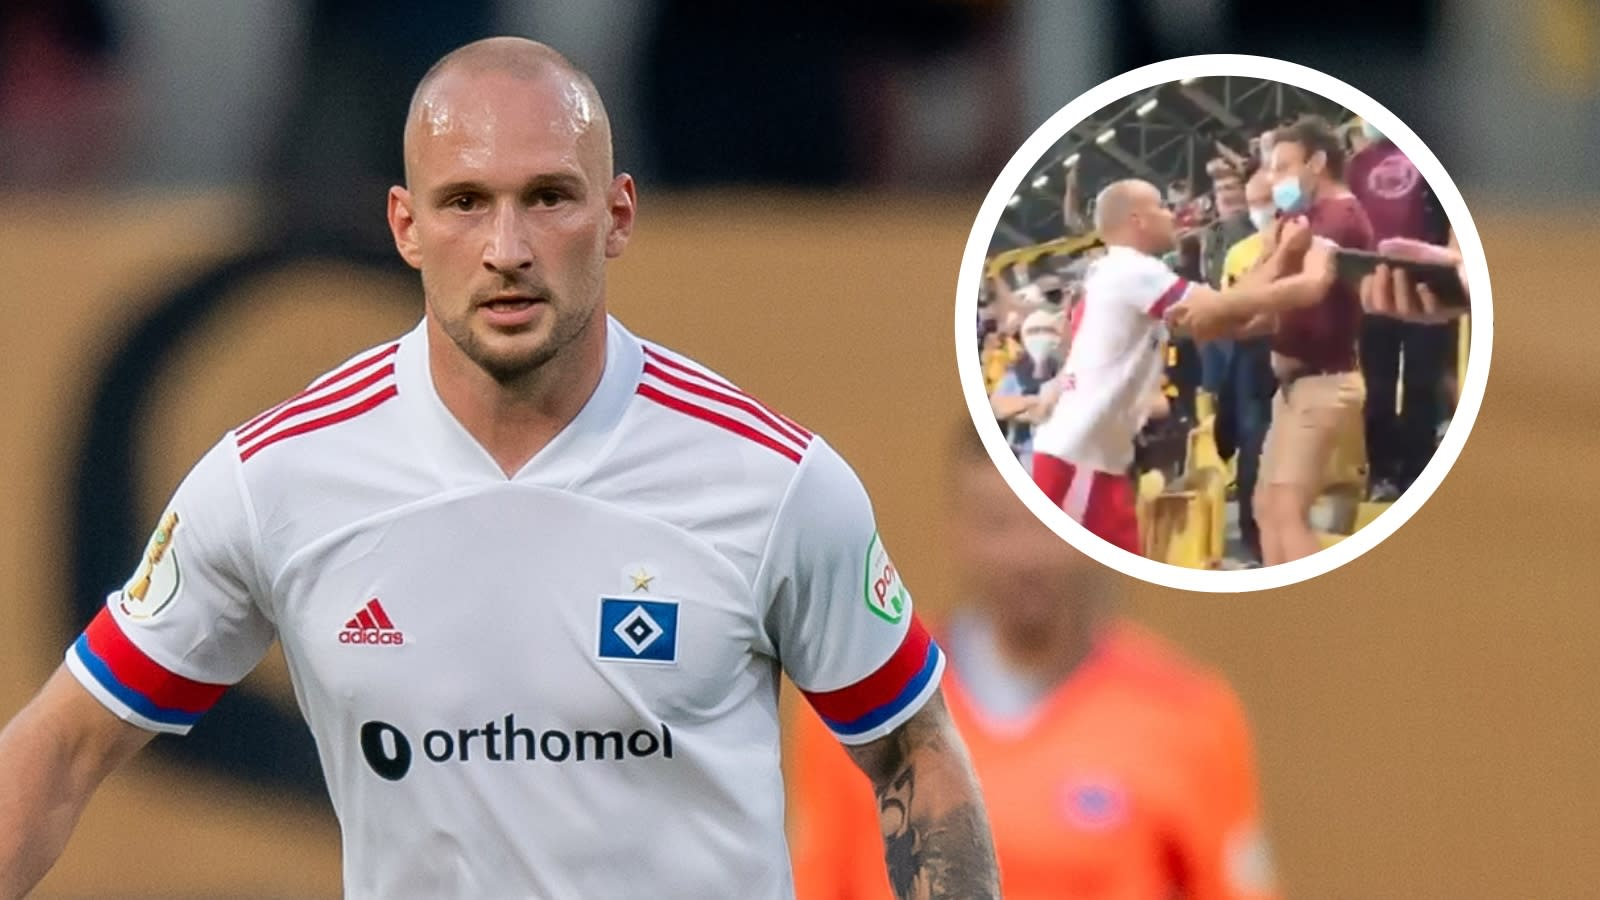 Hamburg player Leistner given three-match ban for entering crowd and attacking fan following cup defeat